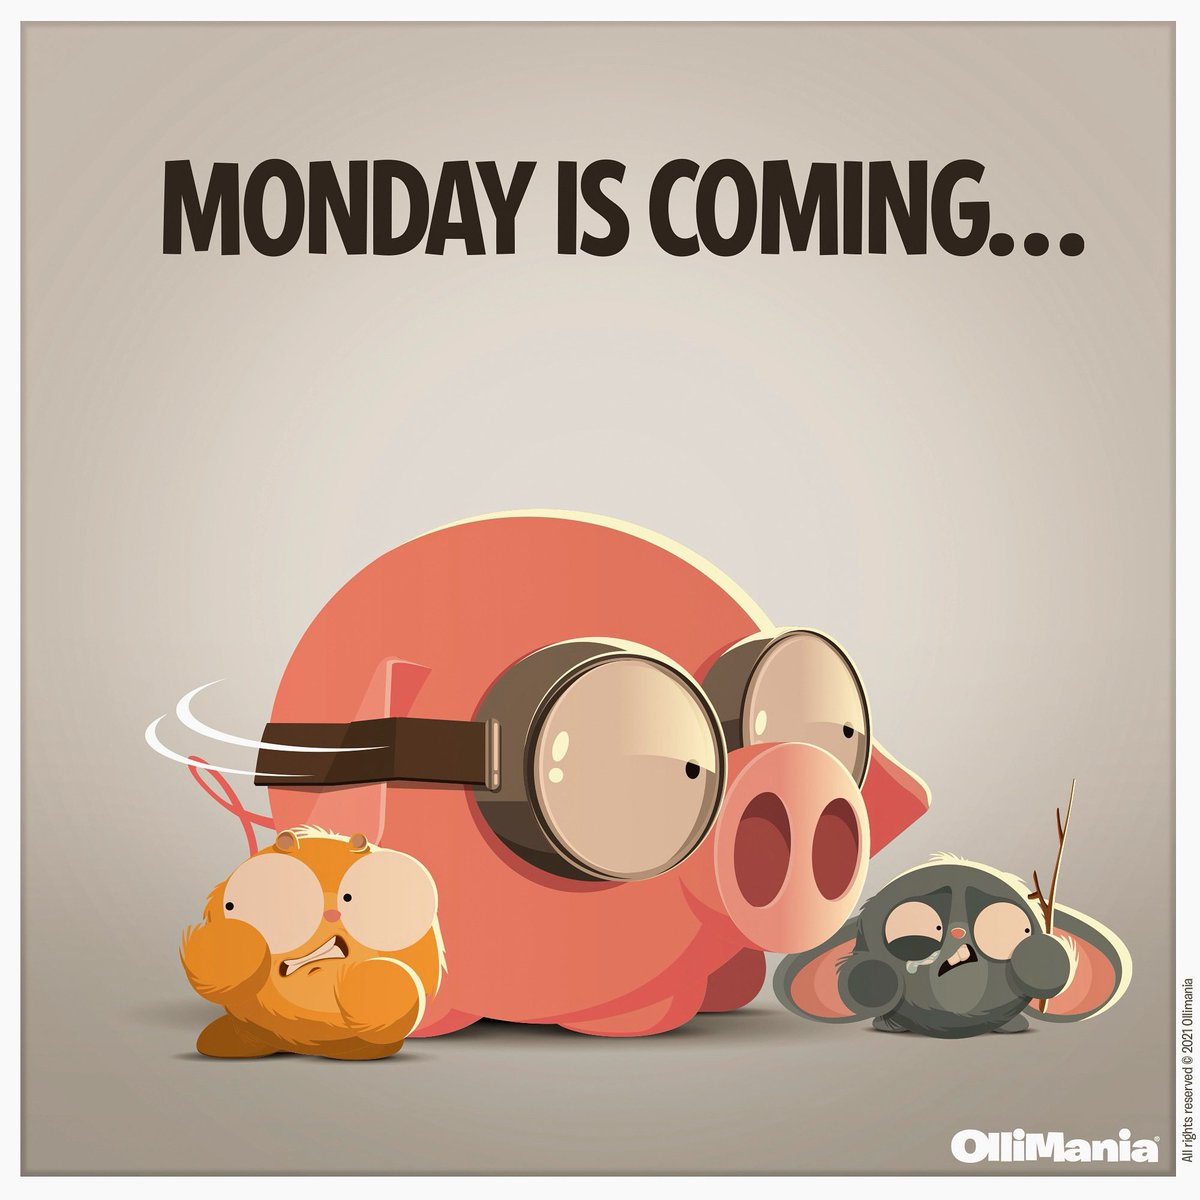 Monday is coming... #monday